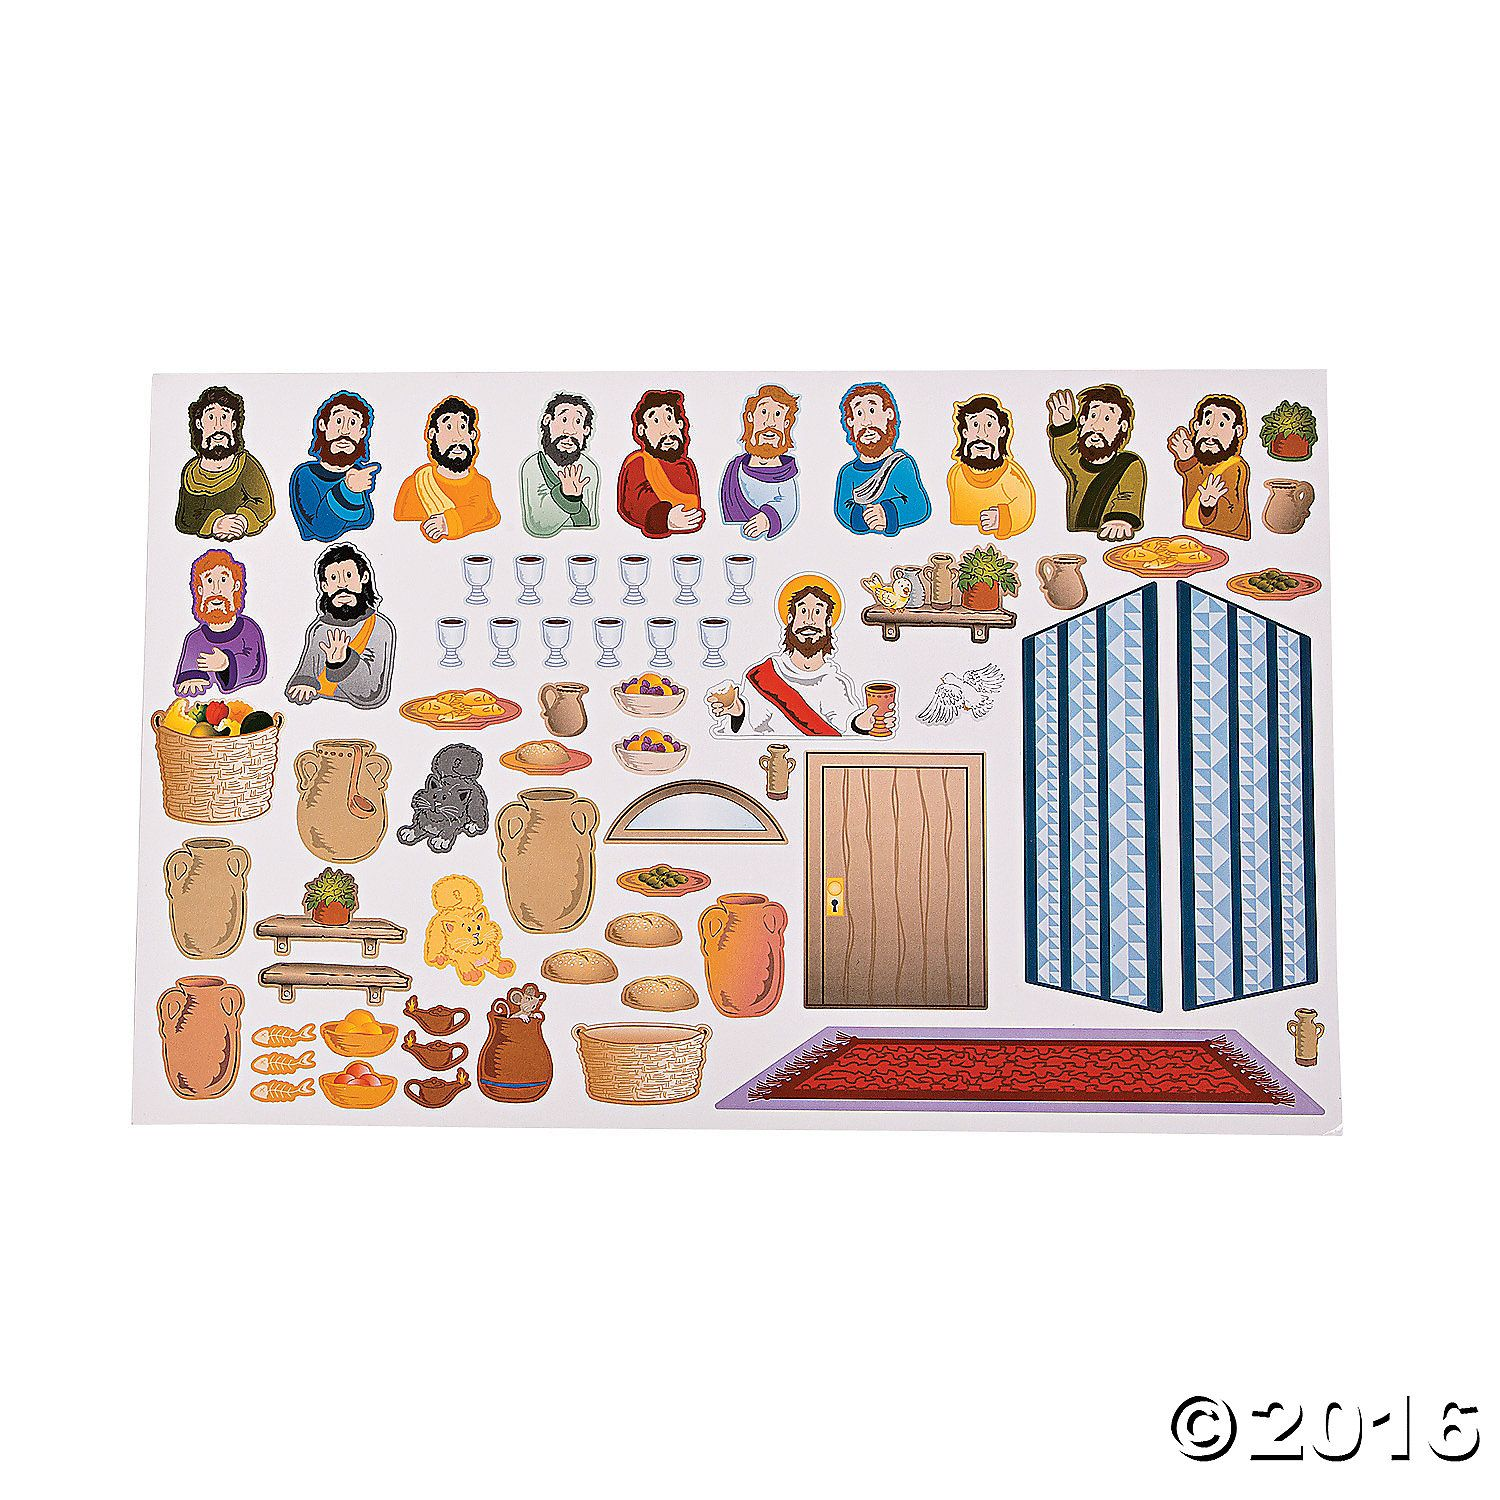 These Last Supper Sticker Scenes Are A Perfect Easter